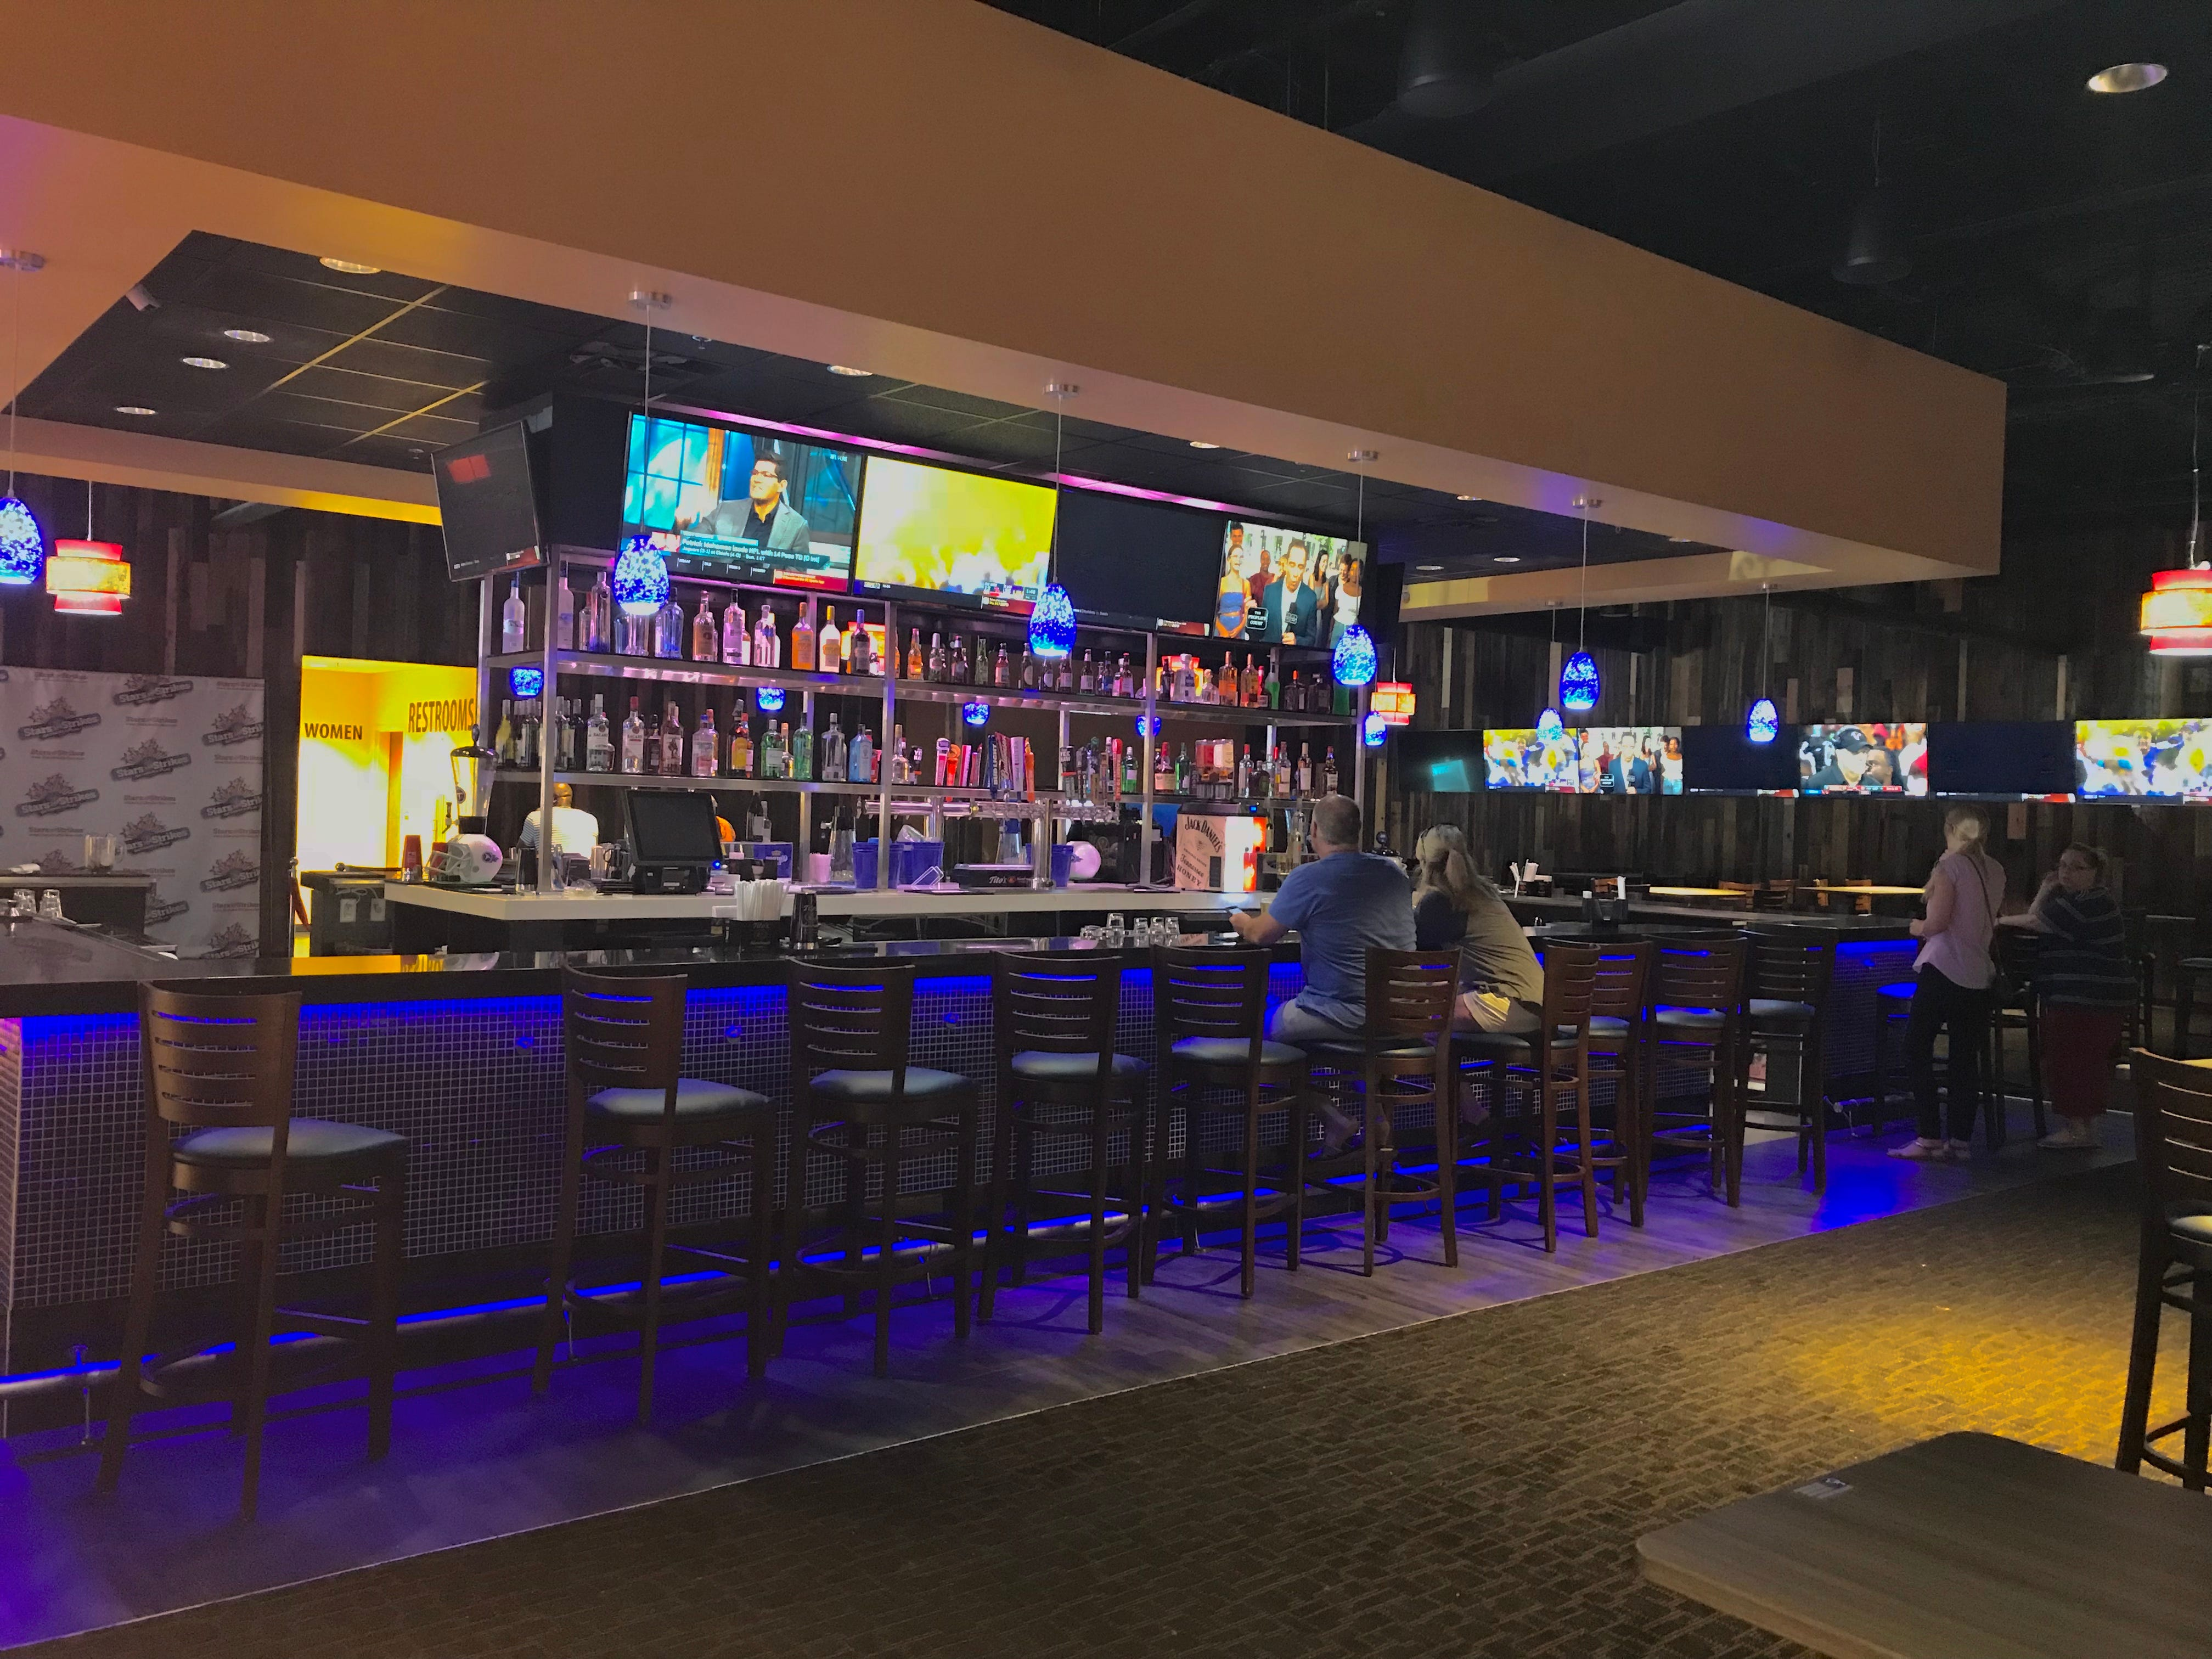 Stars and Strikes in Smyrna, Tenn. has a full bar with televisions so sports fans can watch big games.